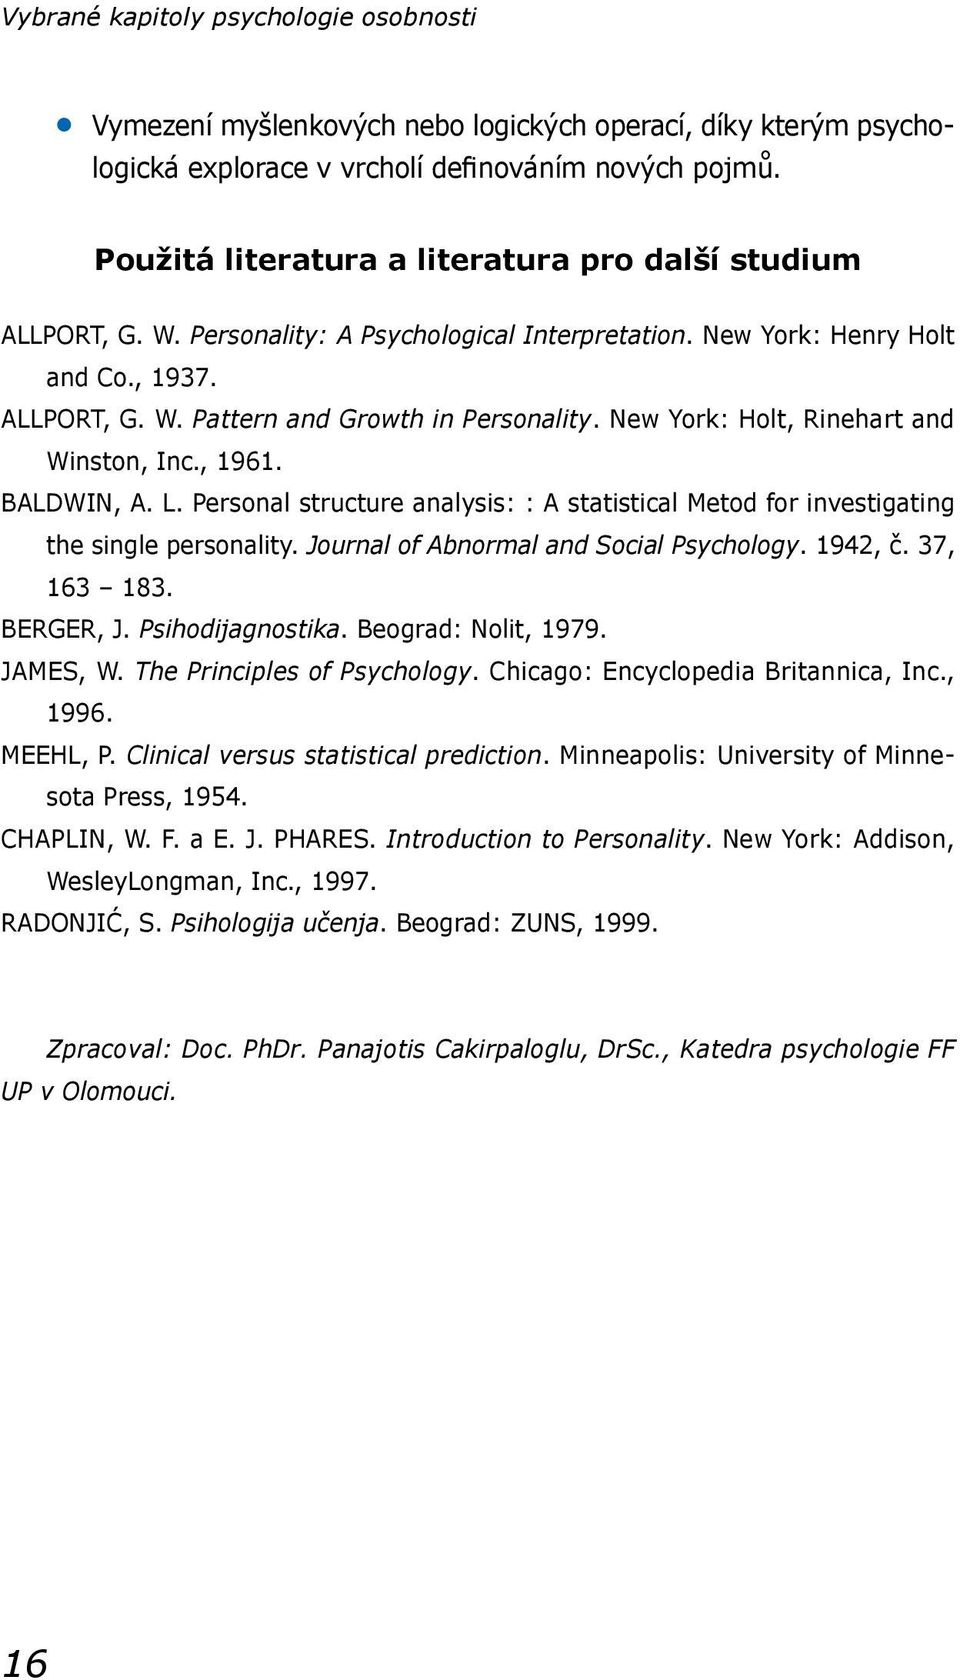 New York: Holt, Rinehart and Winston, Inc., 1961. BALDWIN, A. L. Personal structure analysis: : A statistical Metod for investigating the single personality. Journal of Abnormal and Social Psychology.